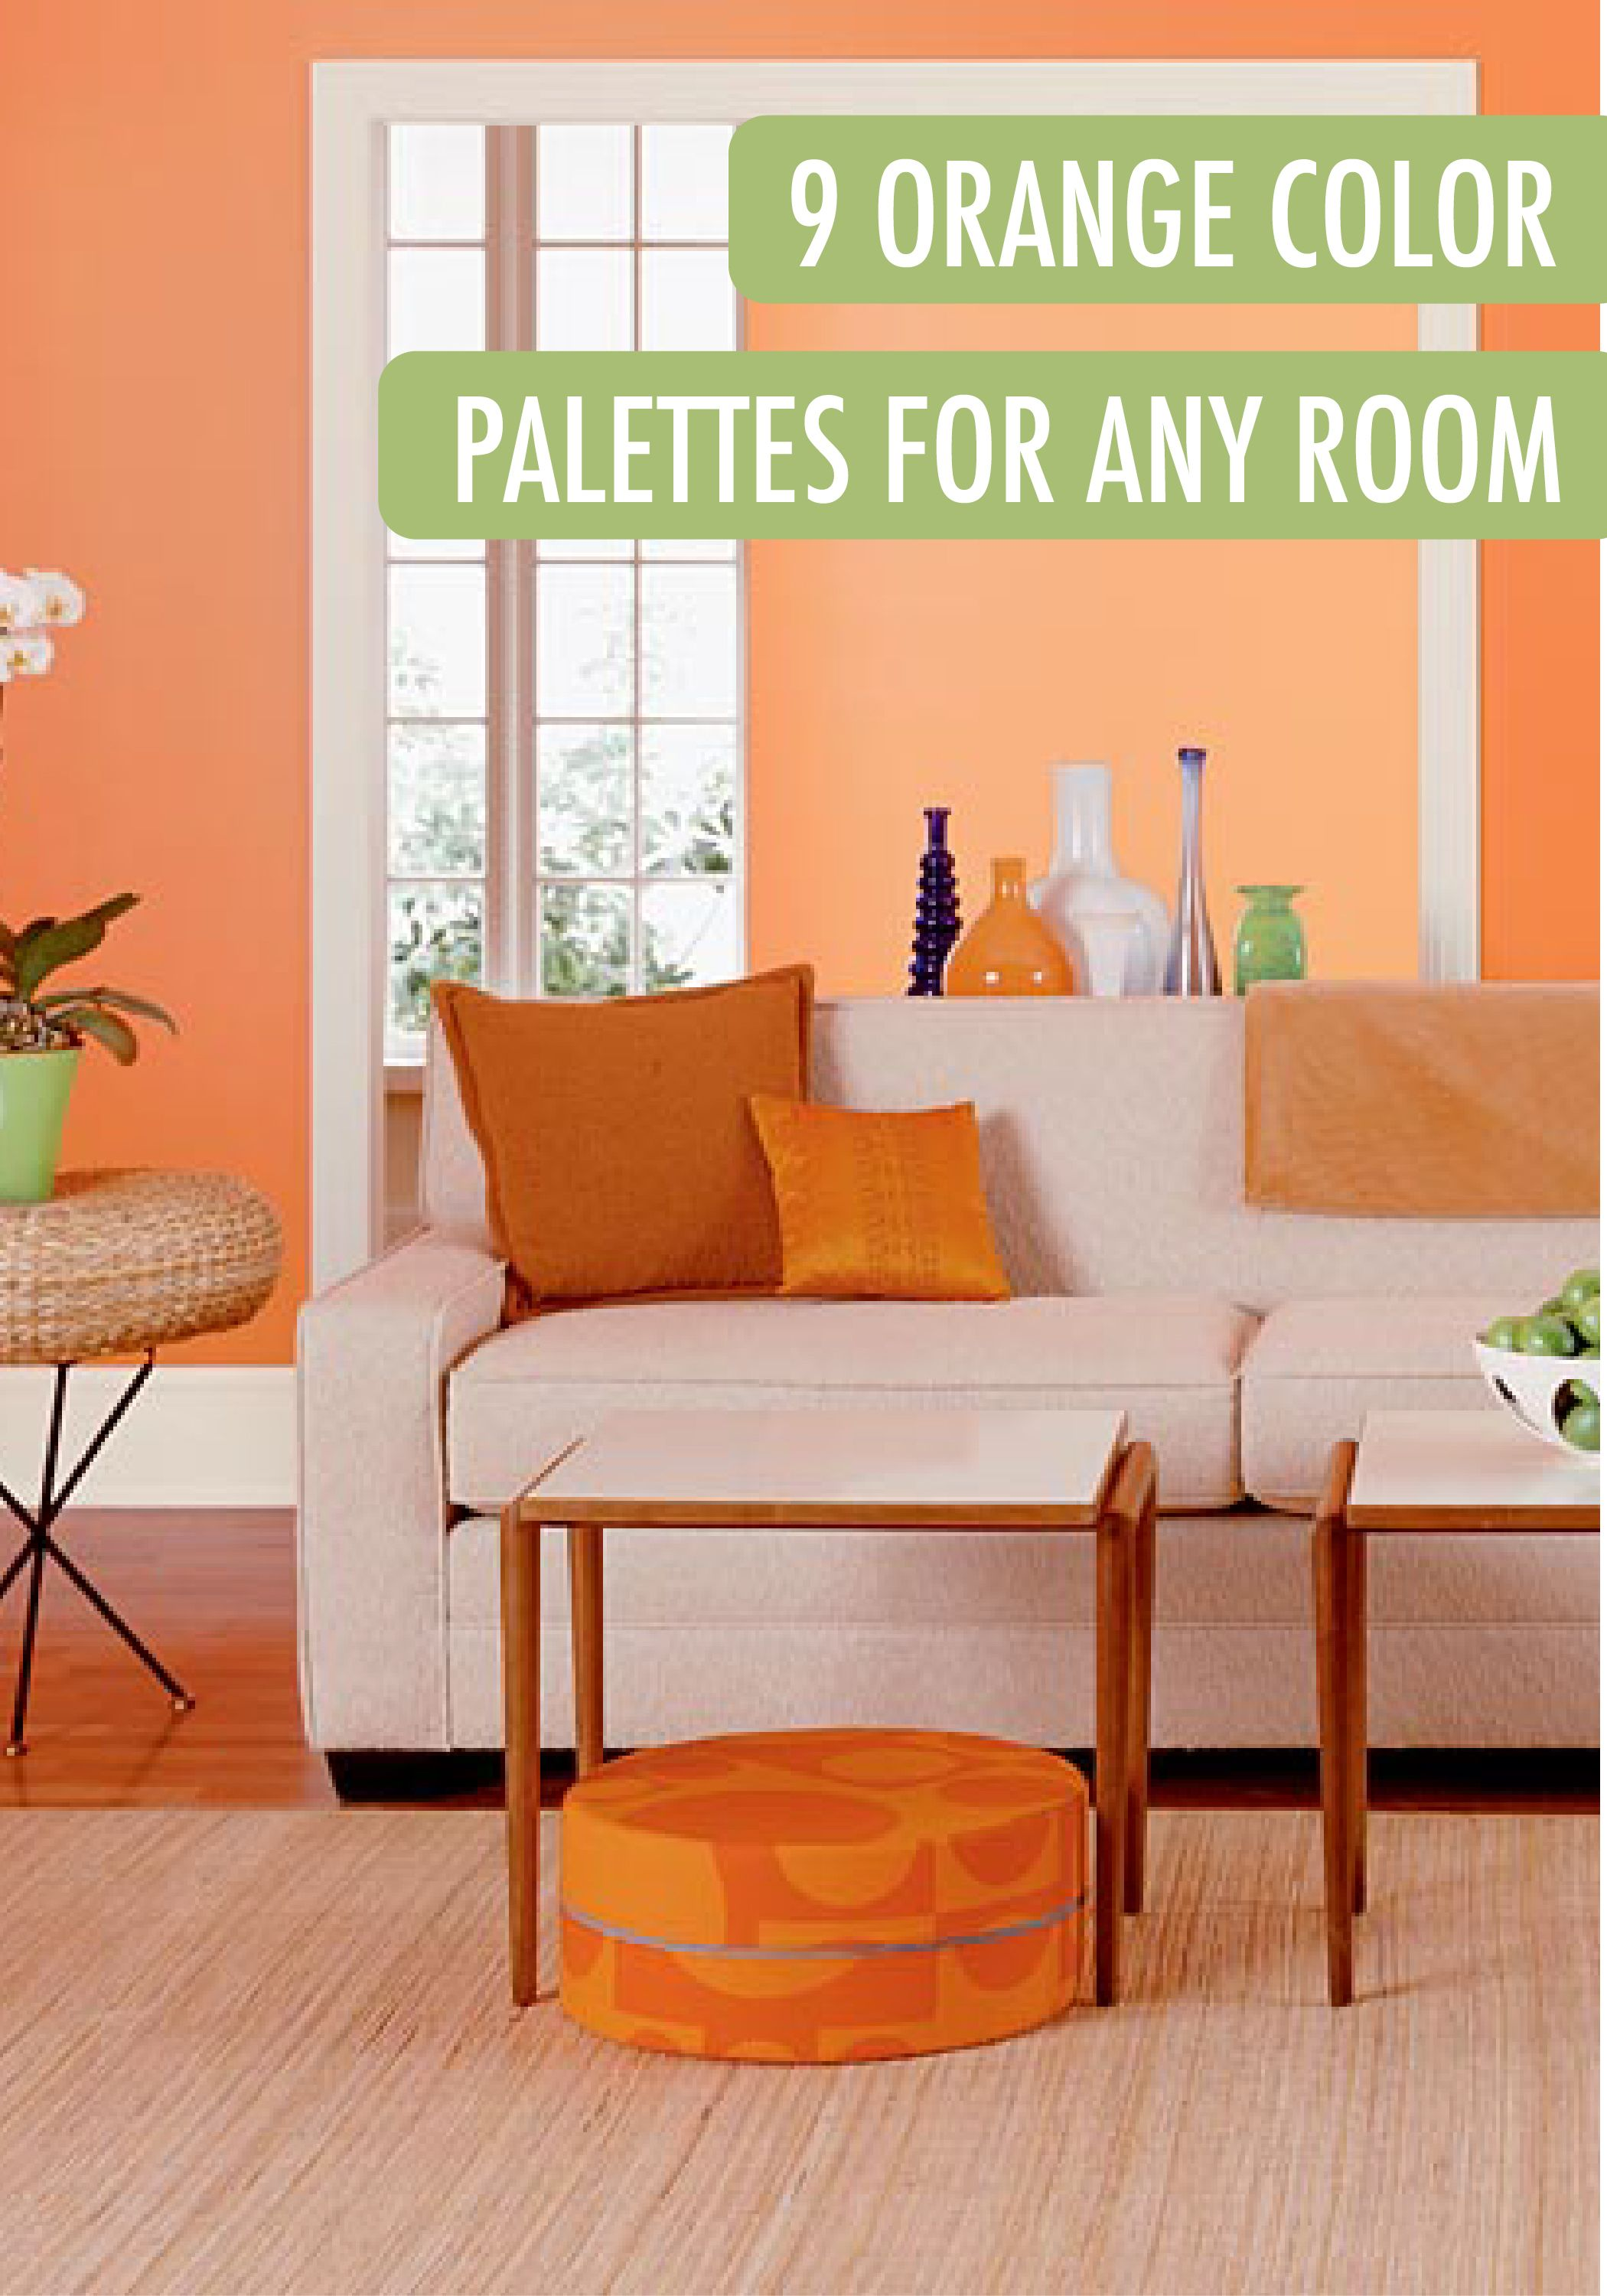 Tangerine Paint Color Style At Home Meredith Miller's Bright Abode  Bedrooms Room And